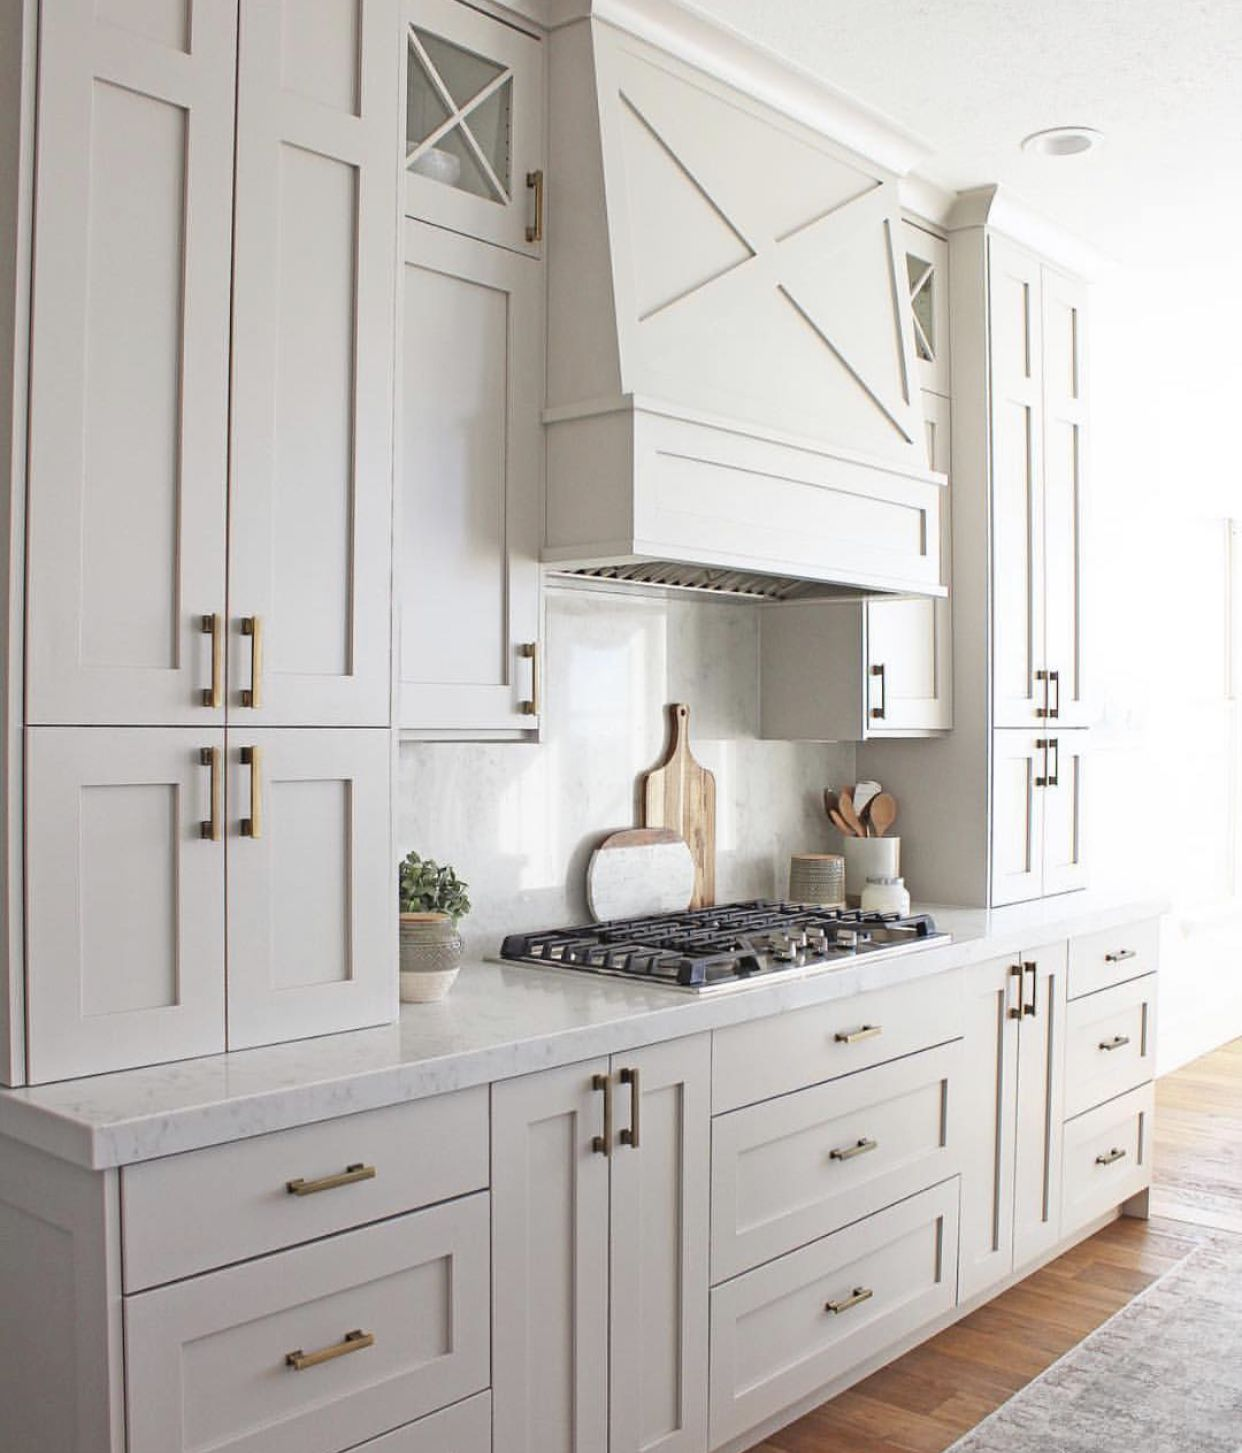 French Country Kitchen Cabinets: French Country Kitchen Inspiration. Love The Detail On The